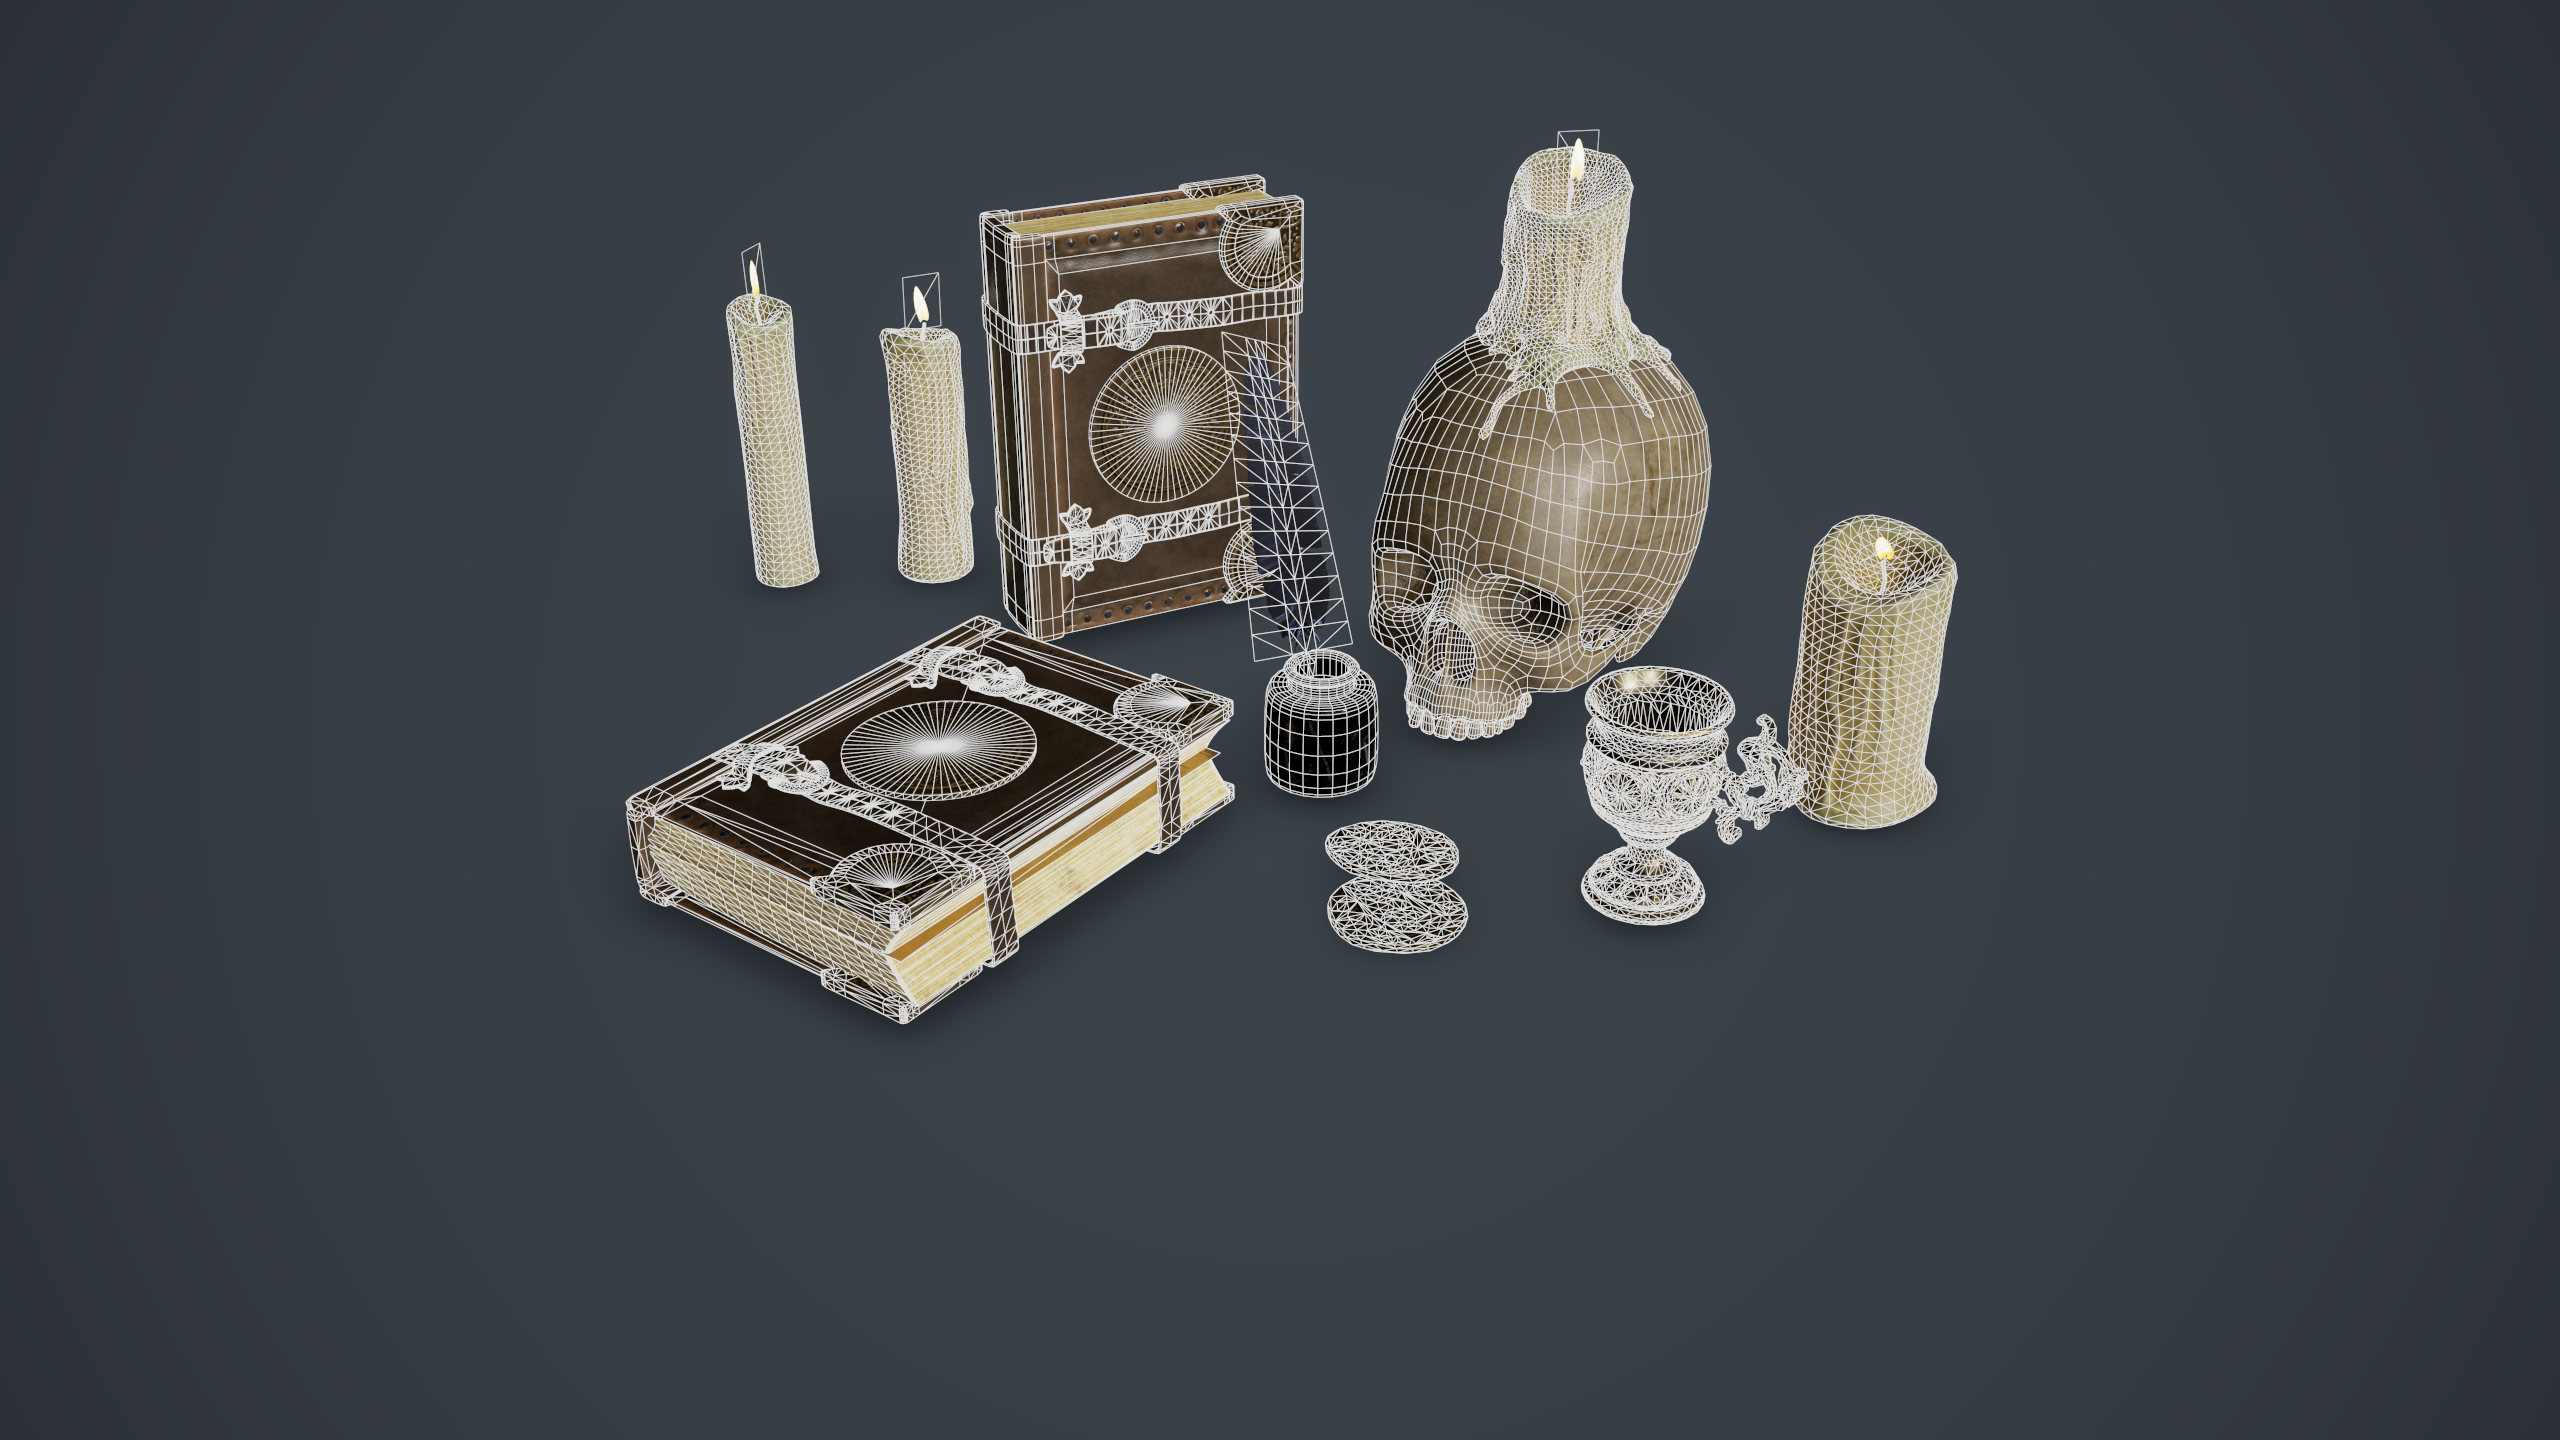 Wireframe shot of the props, rendered in Marmoset Toolbag